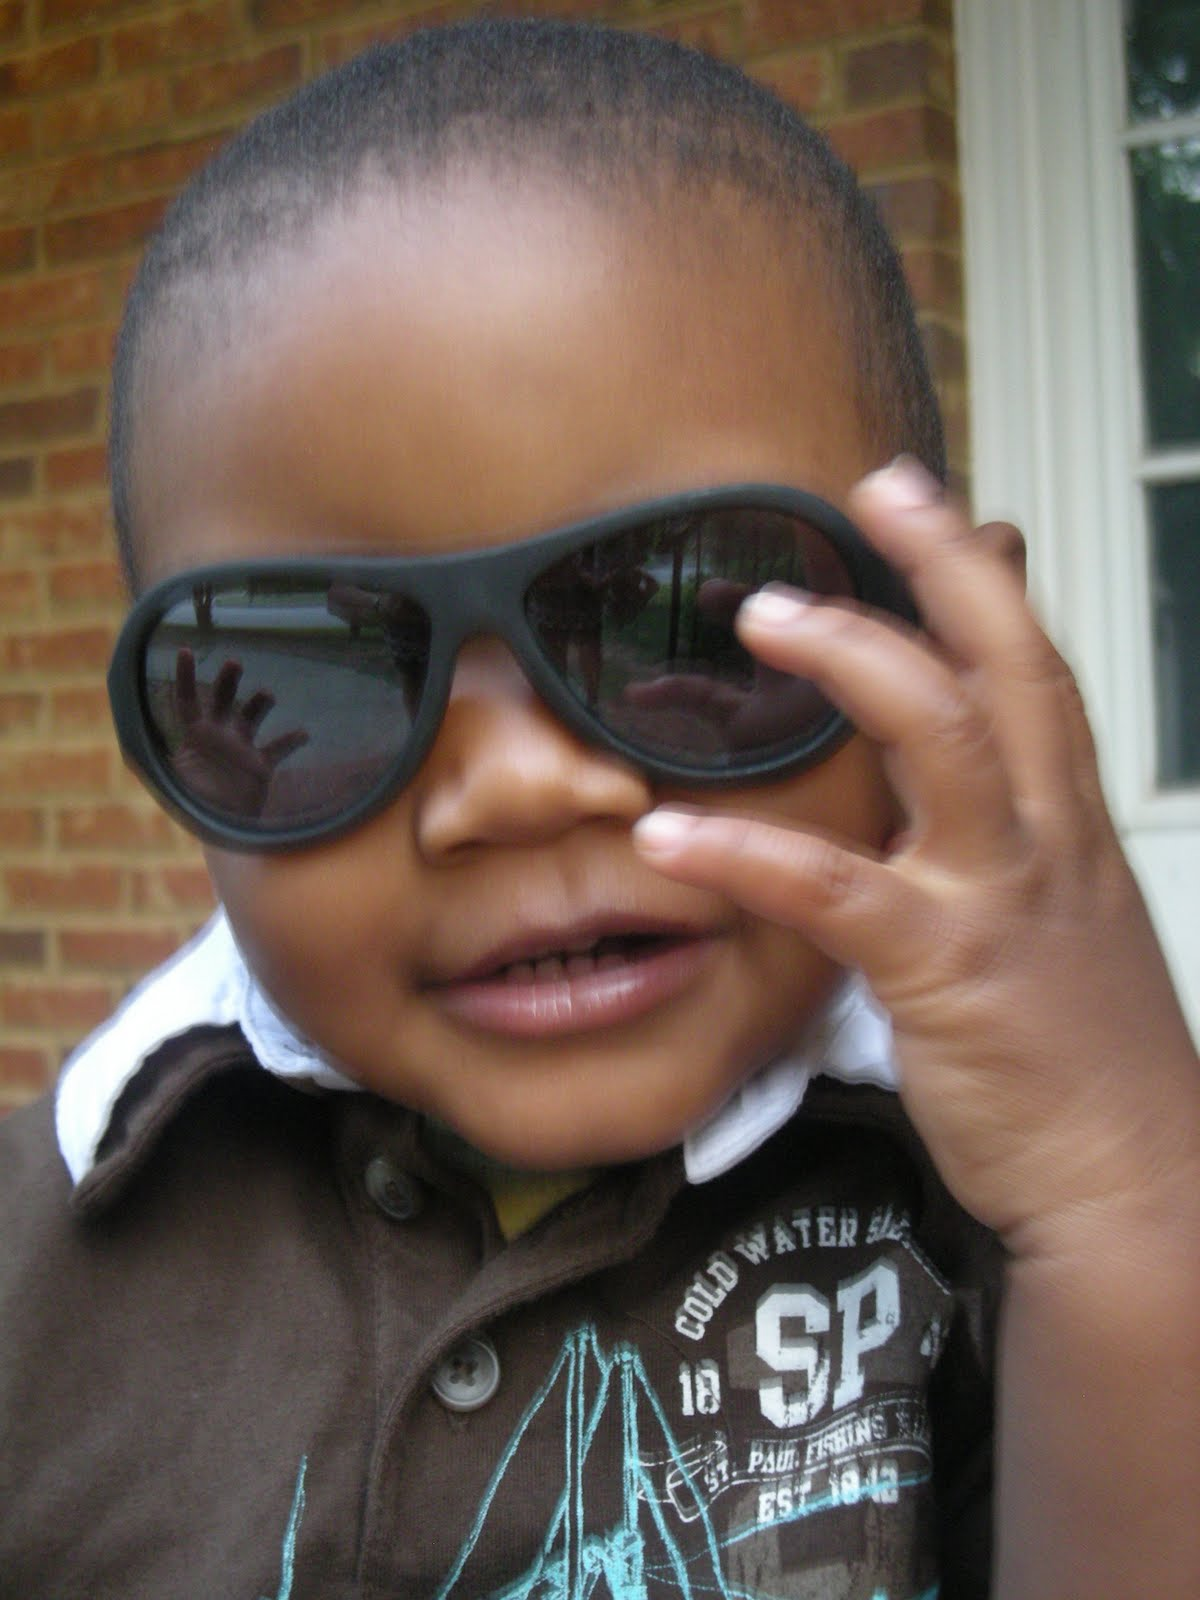 352e74b2c66 ... at www.babiators.com or by asking for Babiators at your local children s  boutique. To see a list of boutiques that carry the coolest kids   sunglasses ...